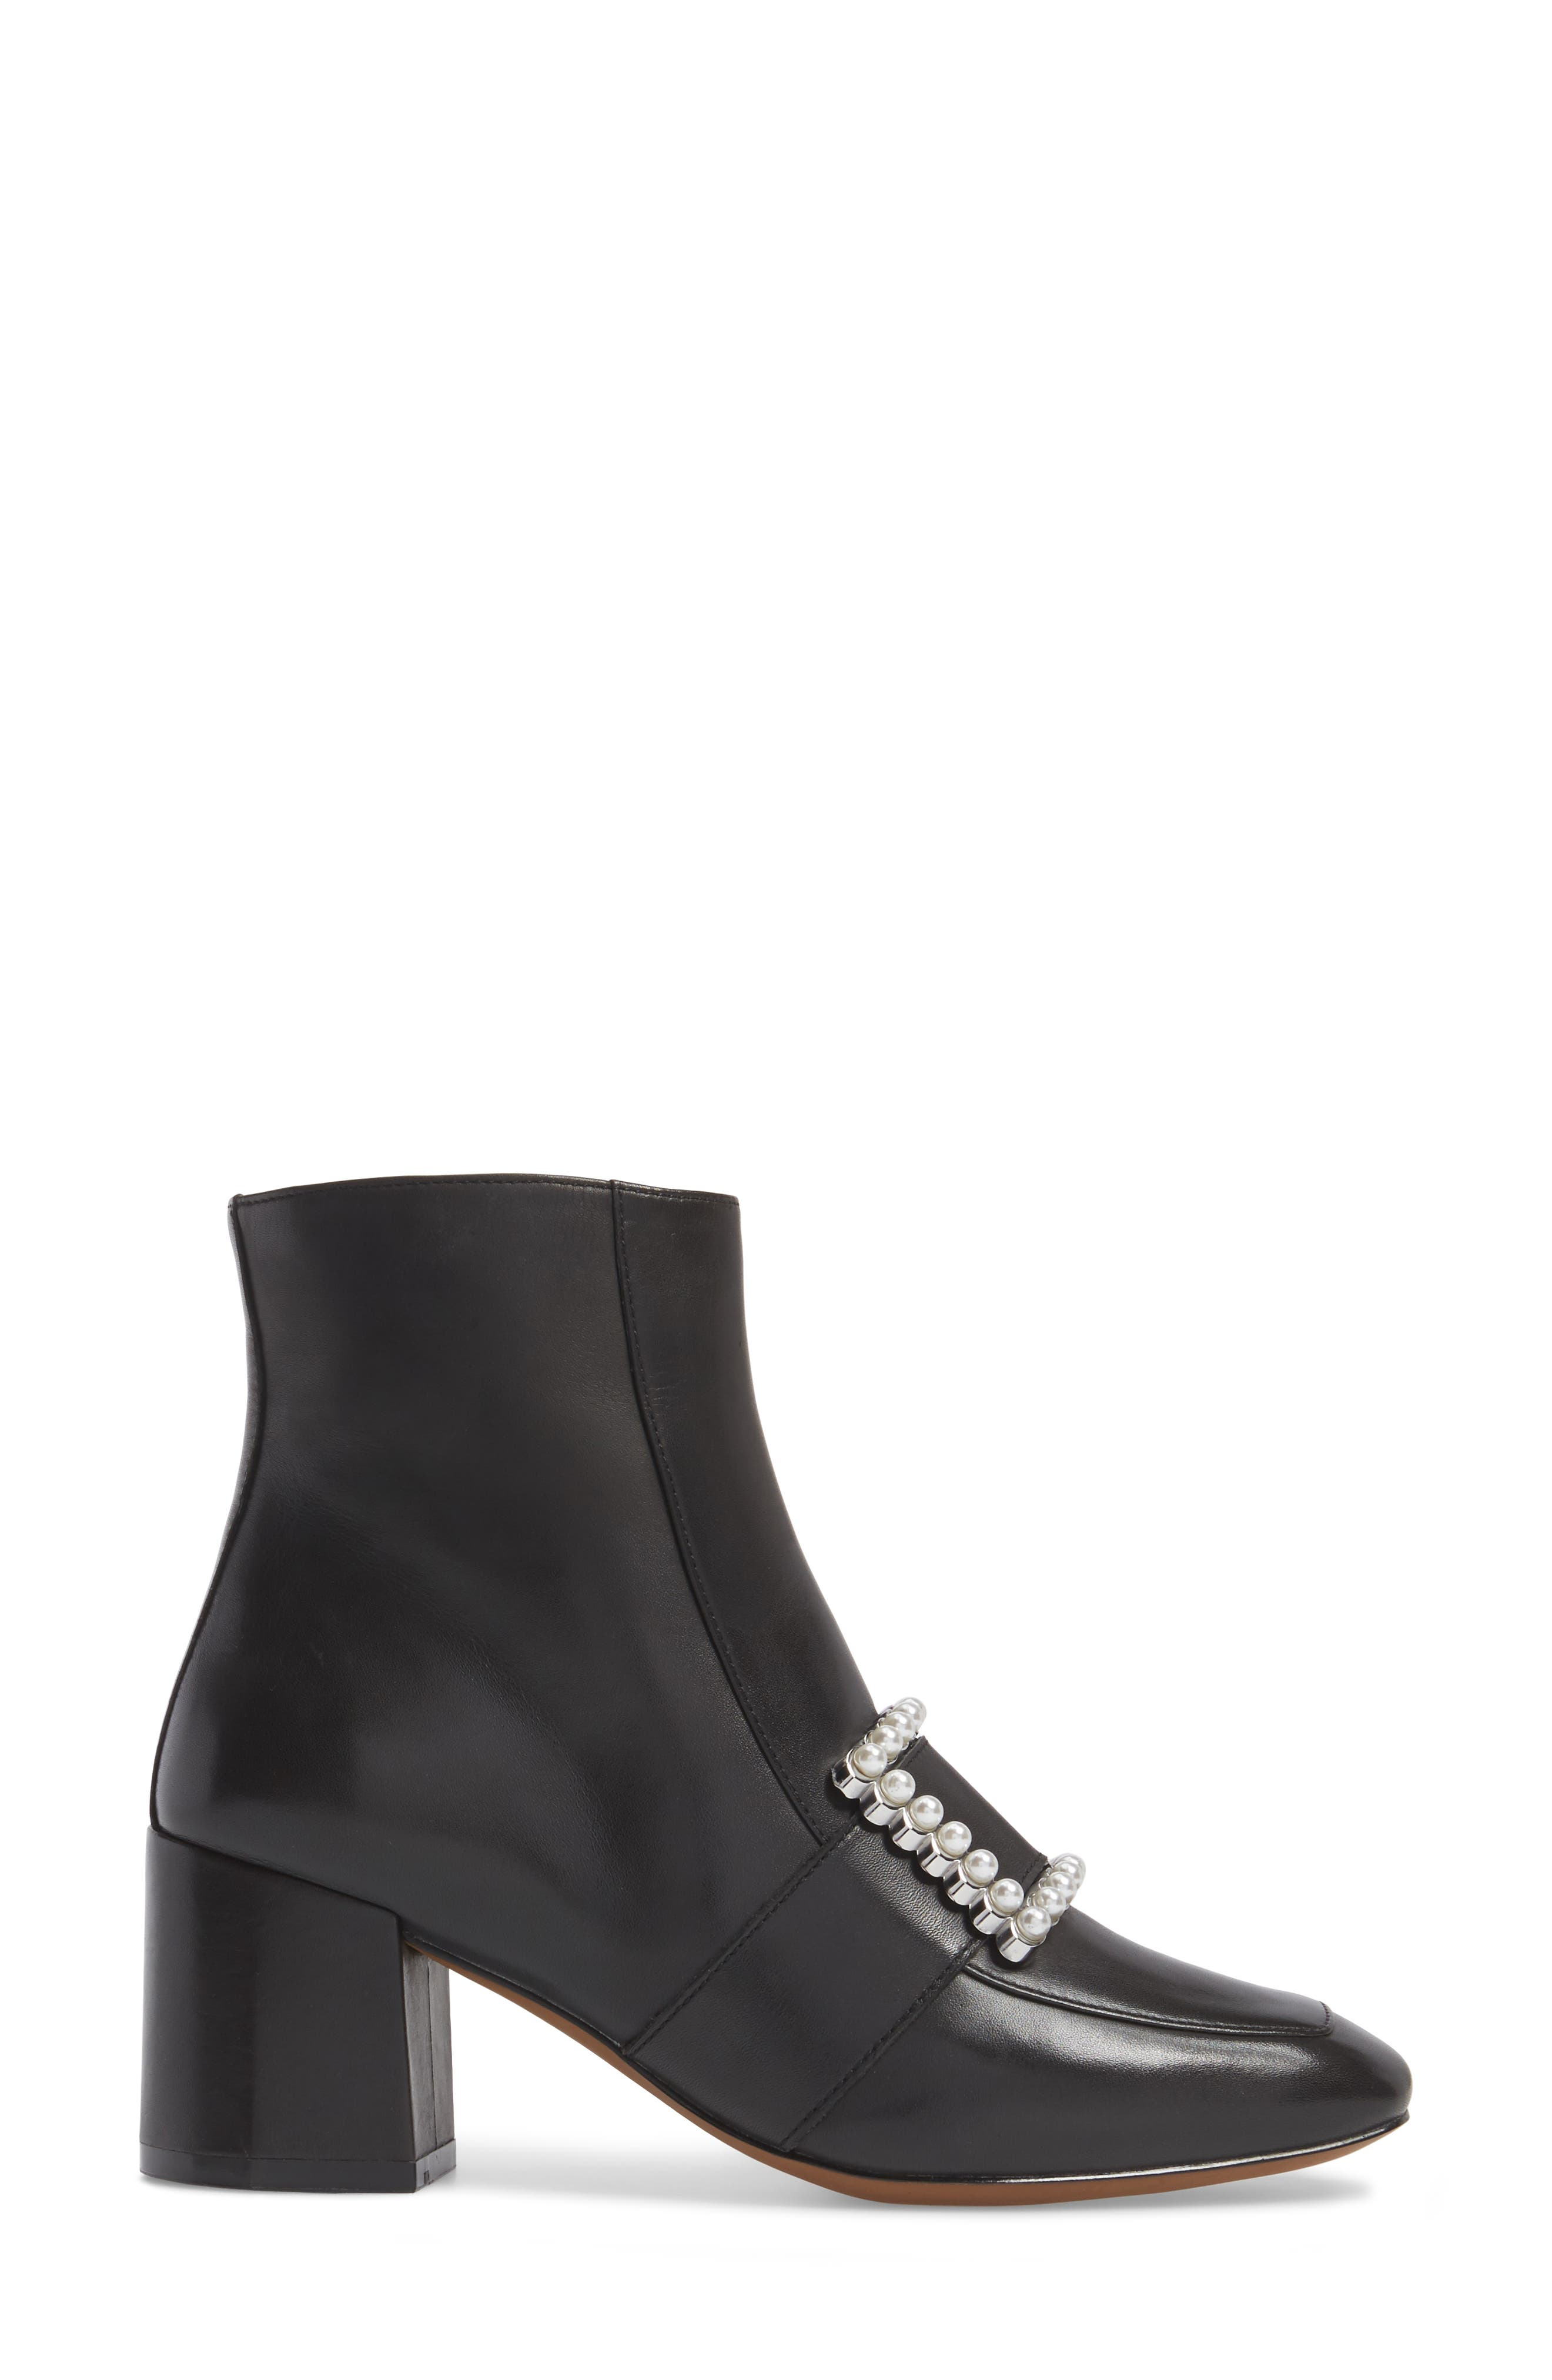 Cadence Buckle Bootie,                             Alternate thumbnail 3, color,                             Black Leather